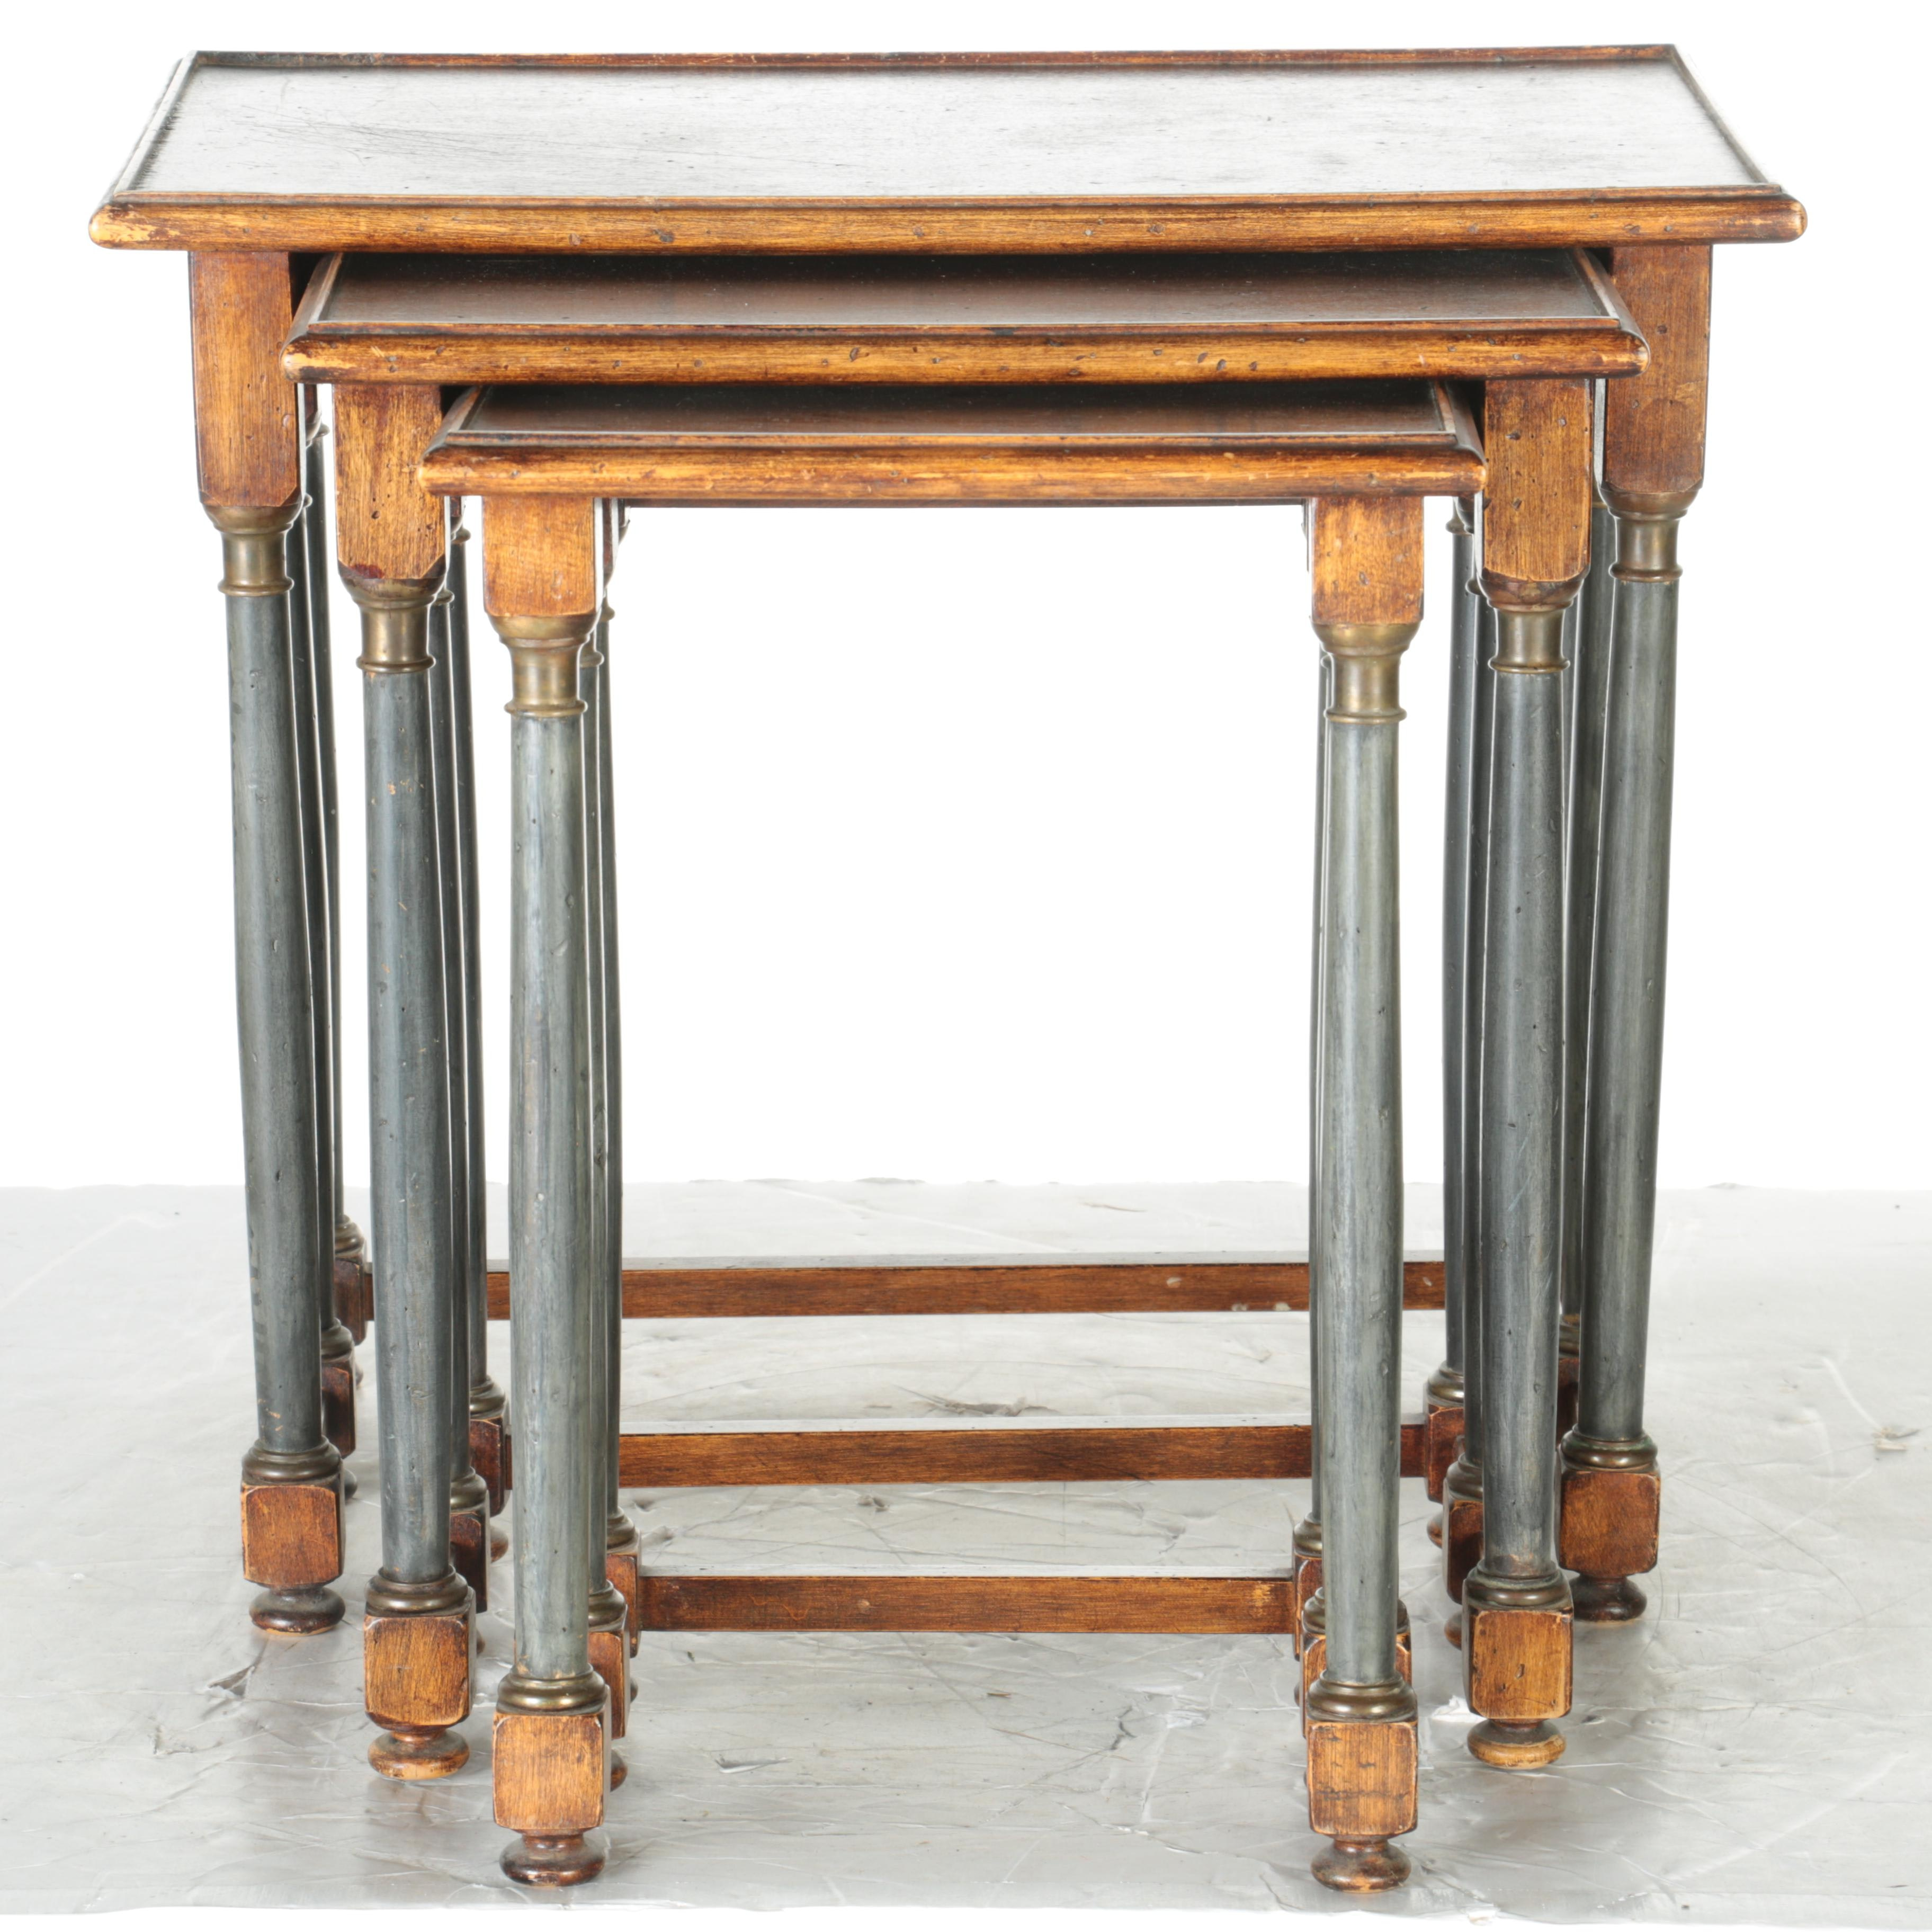 Three Wood and Metal Nesting Tables